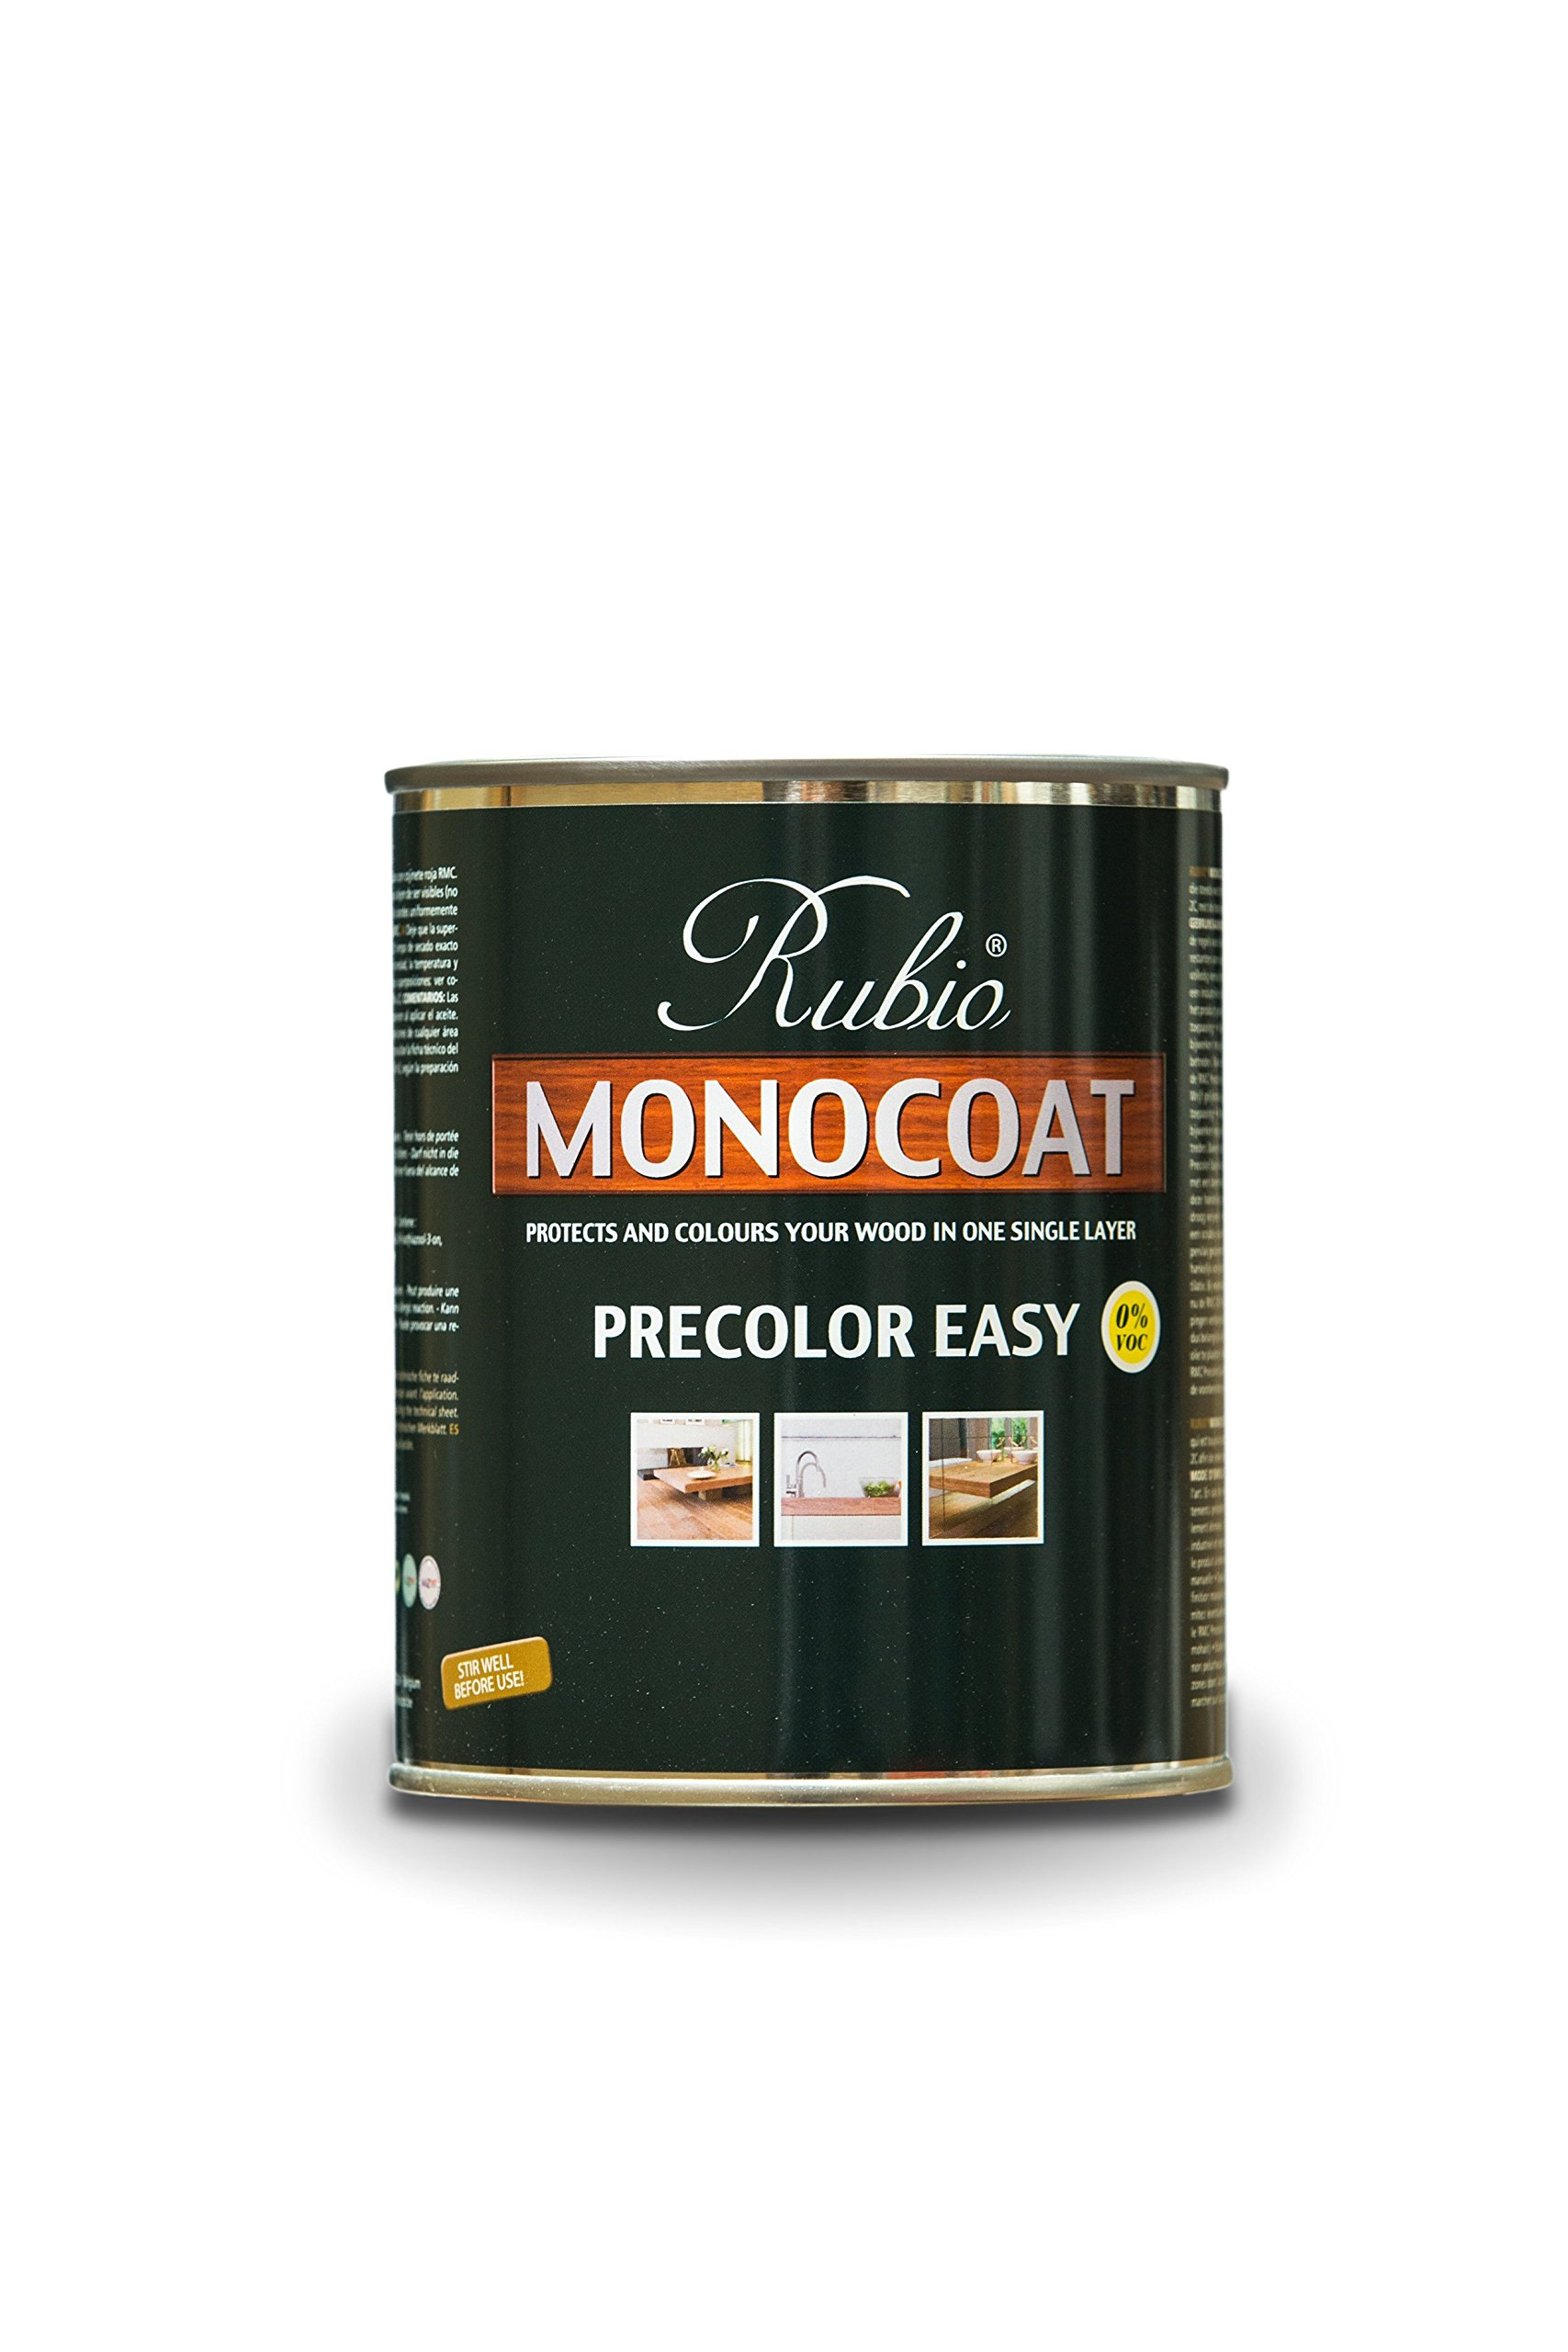 Rubio Monocoat Wood Stain Pre-Color Easy Nordic White 1 Liter by Rubio Monocoat